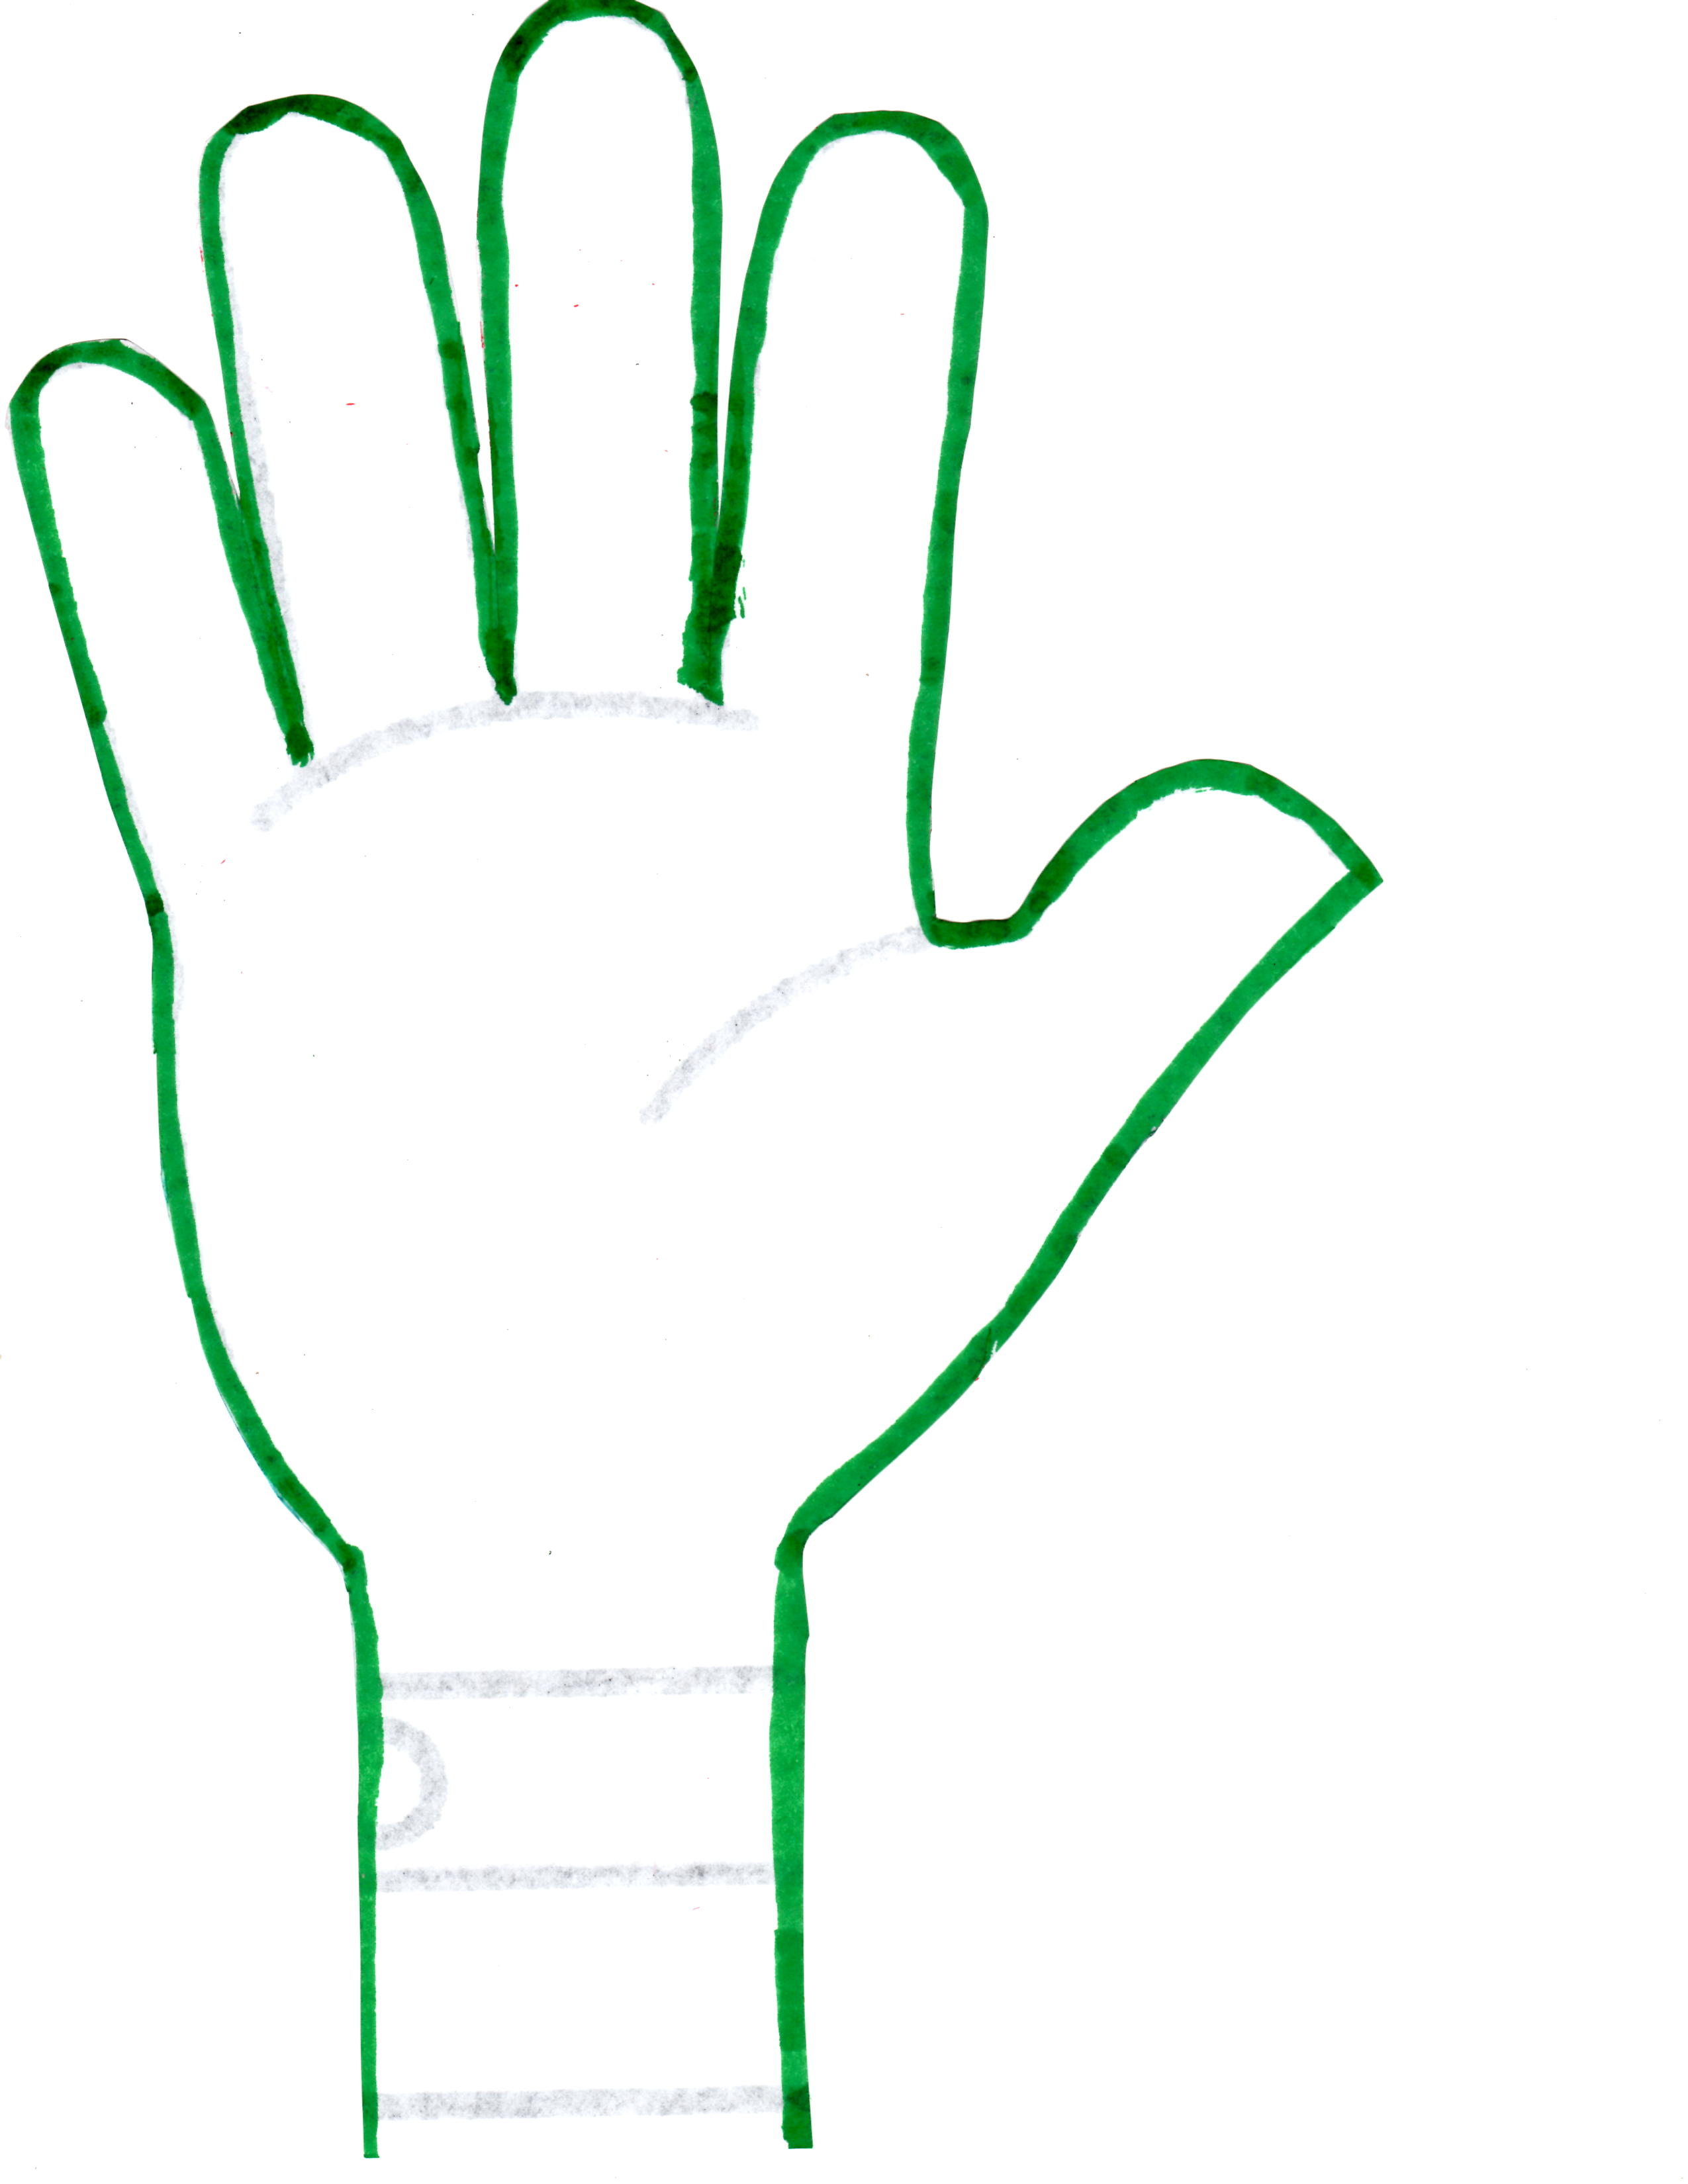 2 Hands Template Clipart.